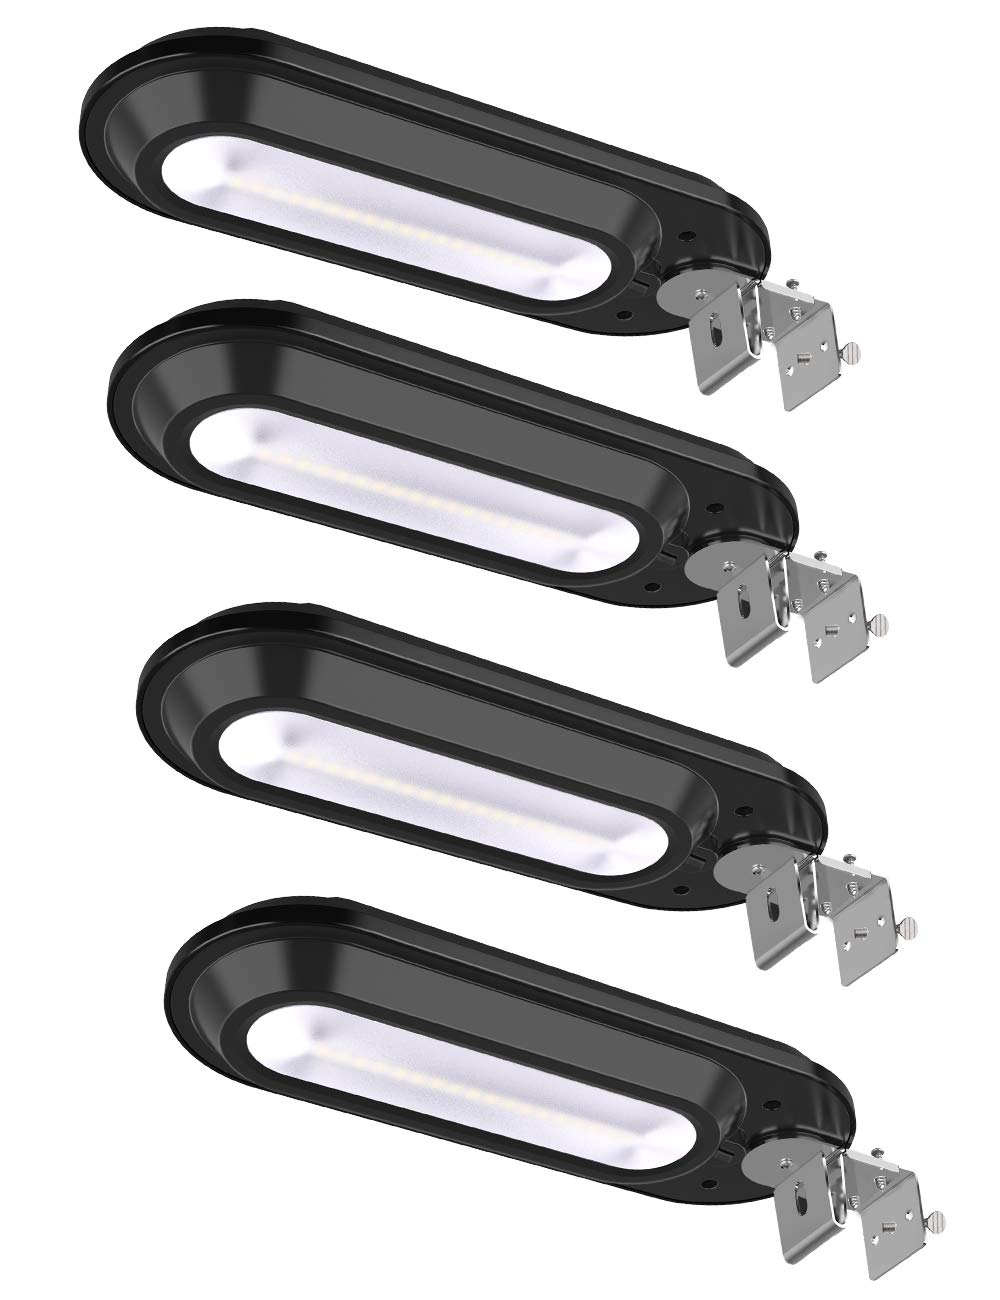 ROSHWEY Solar Gutter Lights Outdoor, Super Bright 18 LED Deck Light Waterproof Wall Lamps Dusk to Dawn for Garden Fence Garage Pathway (Pack of 4, Cool White Light) by ROSHWEY